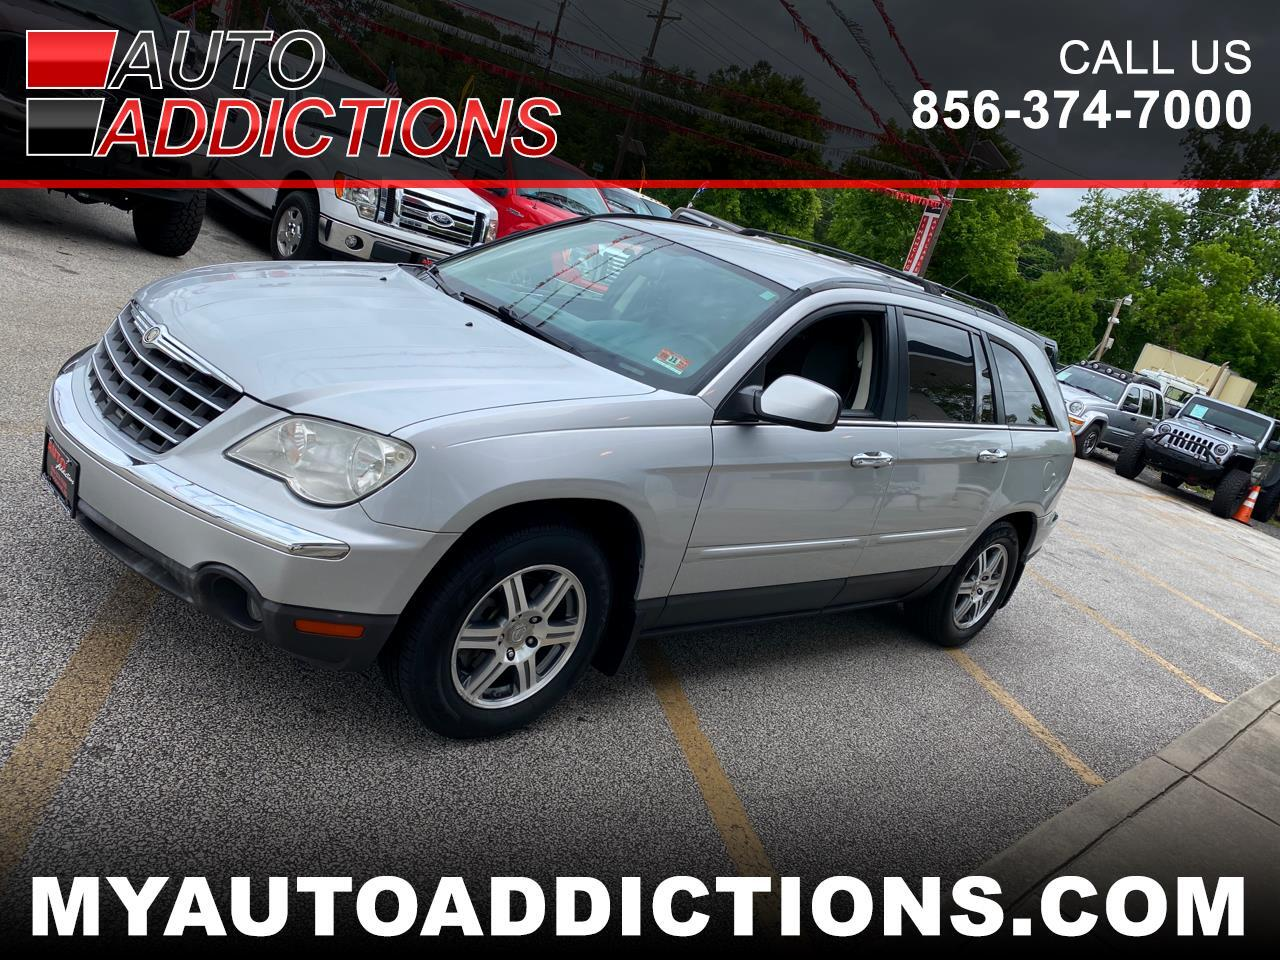 Chrysler Pacifica 4dr Wgn Touring-L Plus 2007